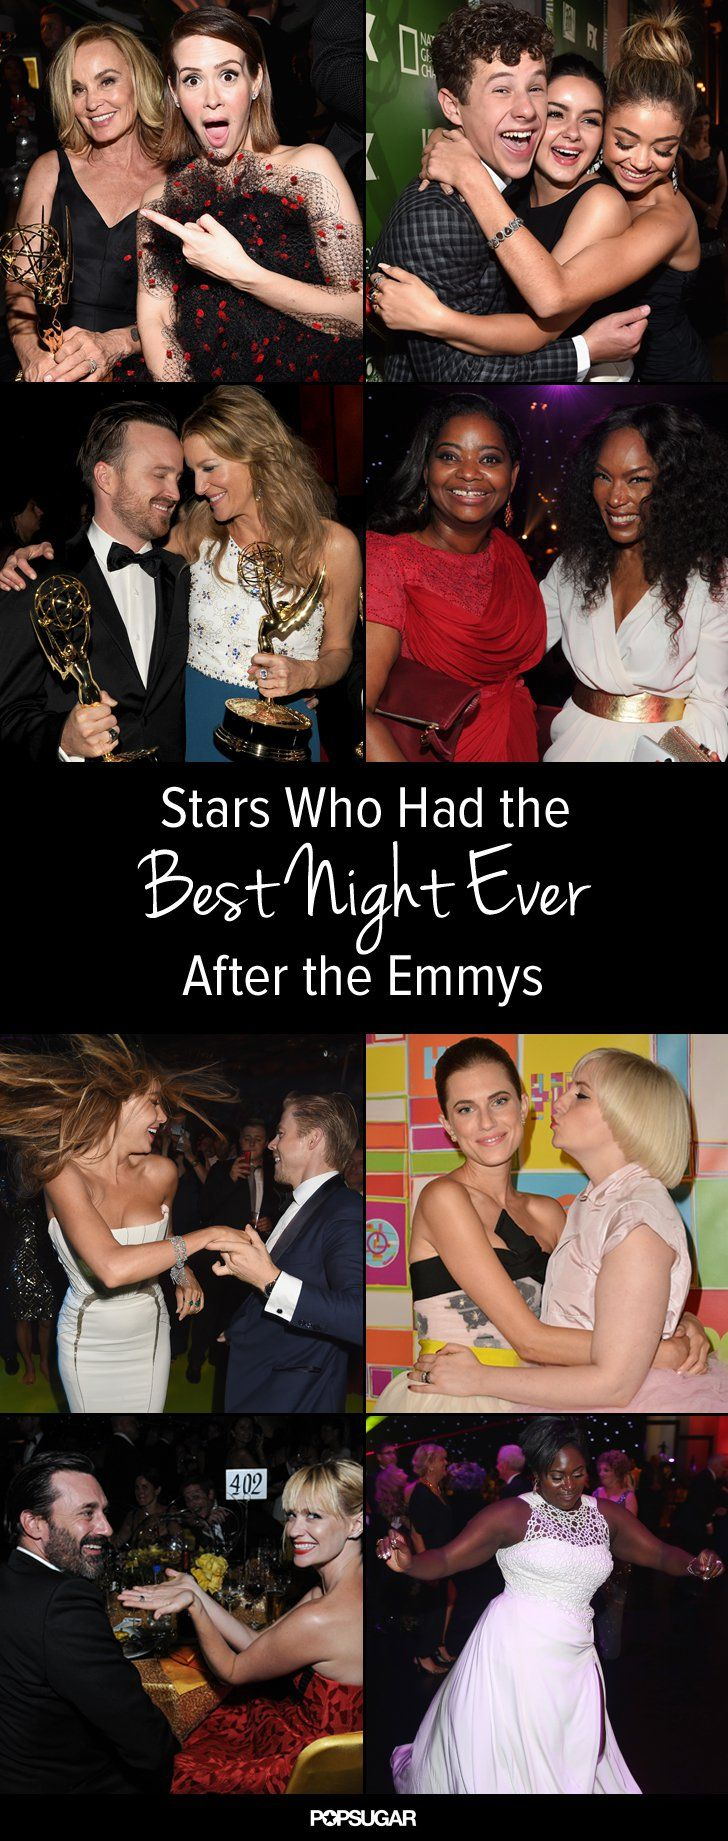 Pin for Later: Best Night Ever? These Stars Had the Most Fun After the Emmys